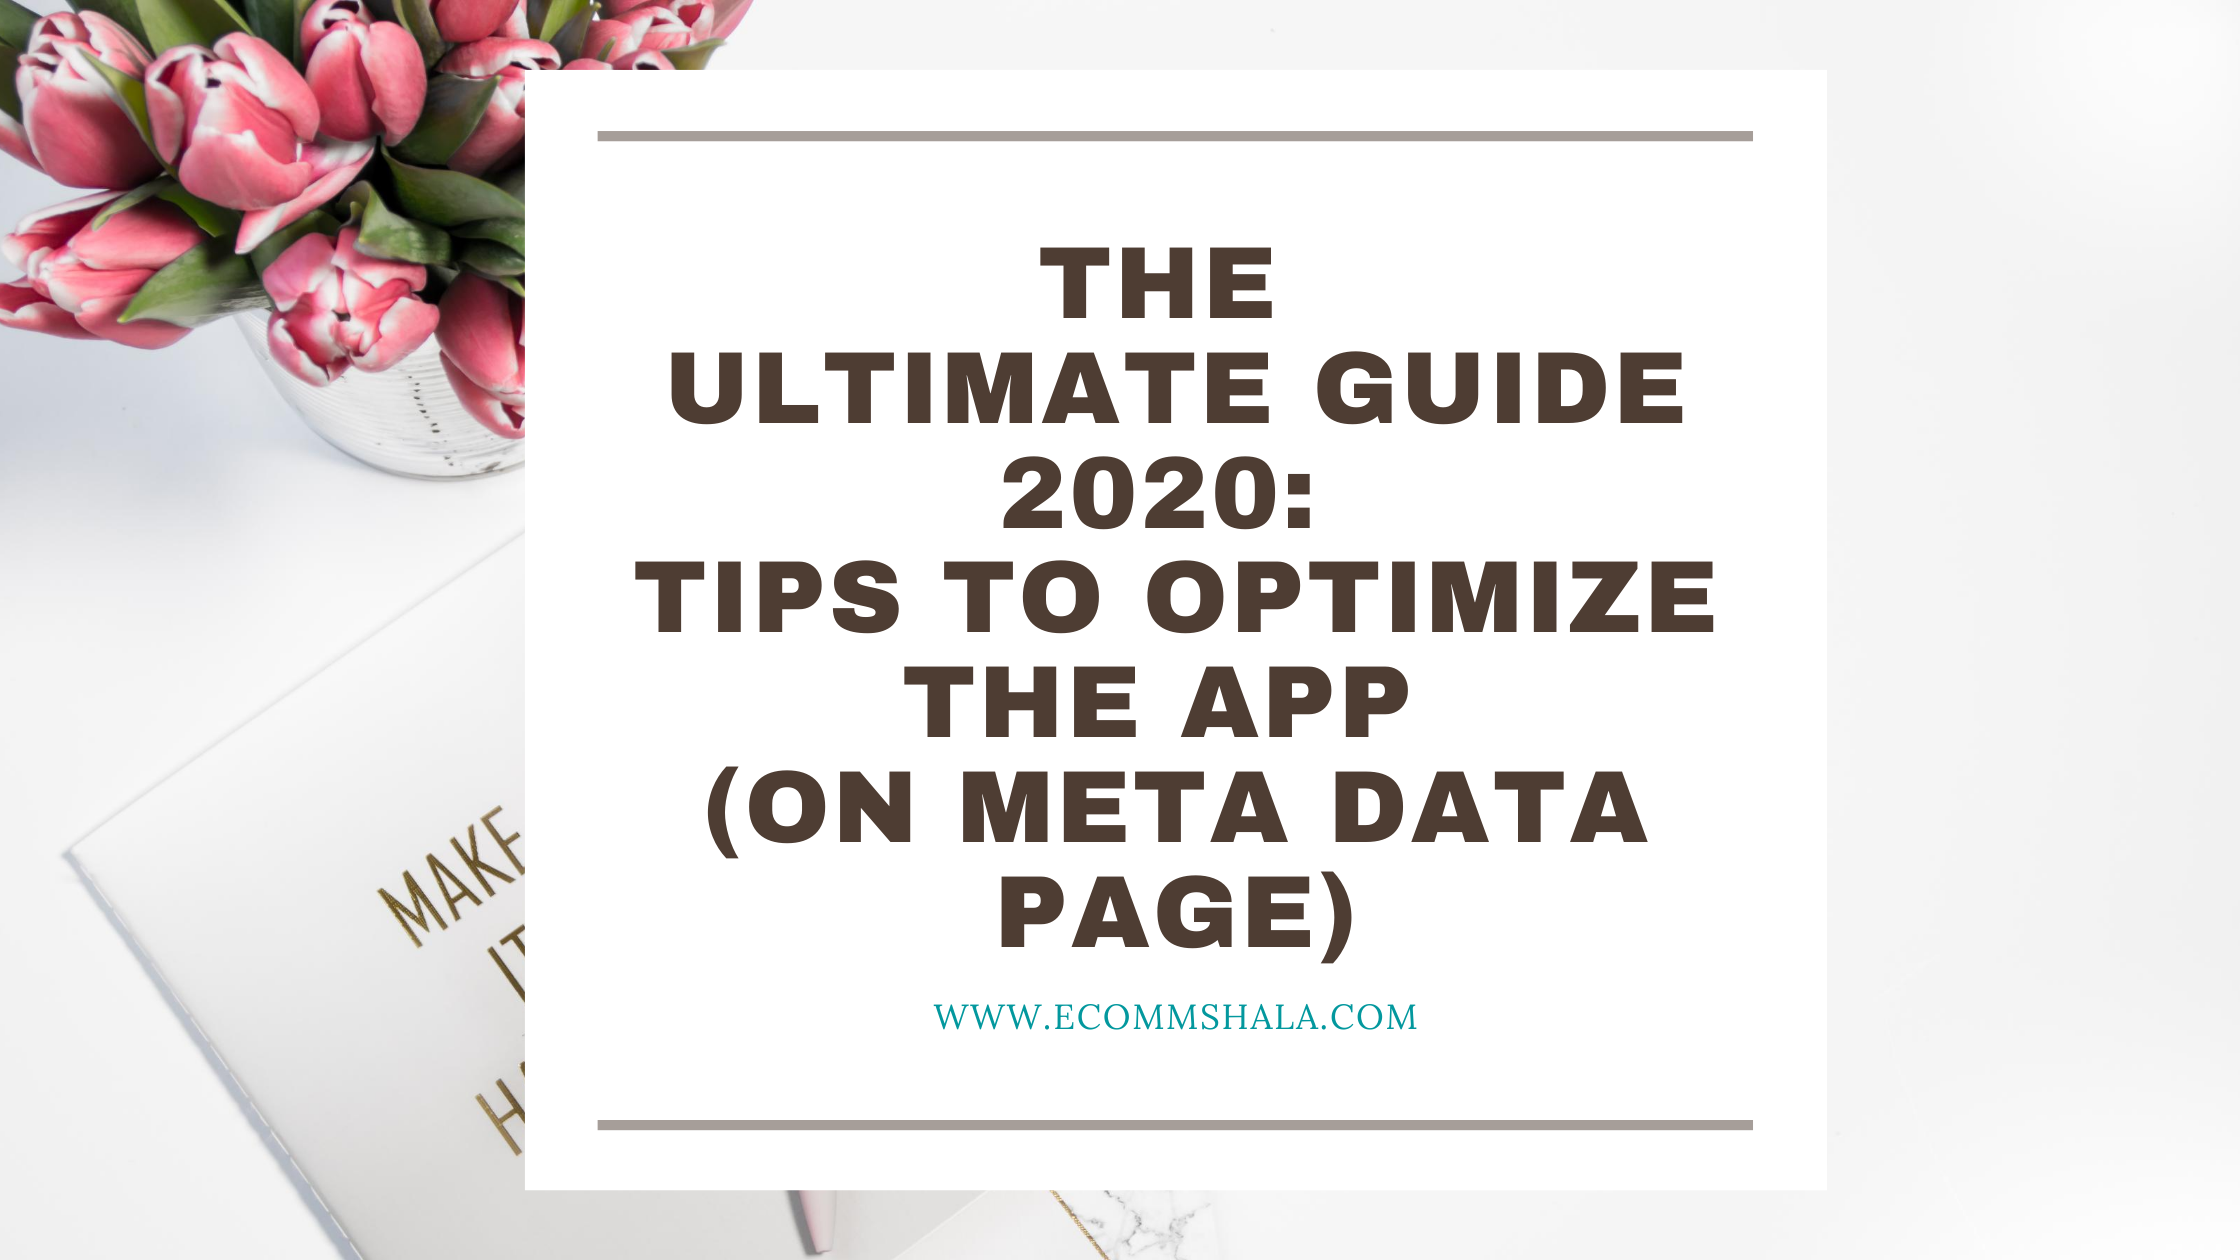 The Ultimate Guide 2020: Tips to Optimize the App (On Meta Data Page)